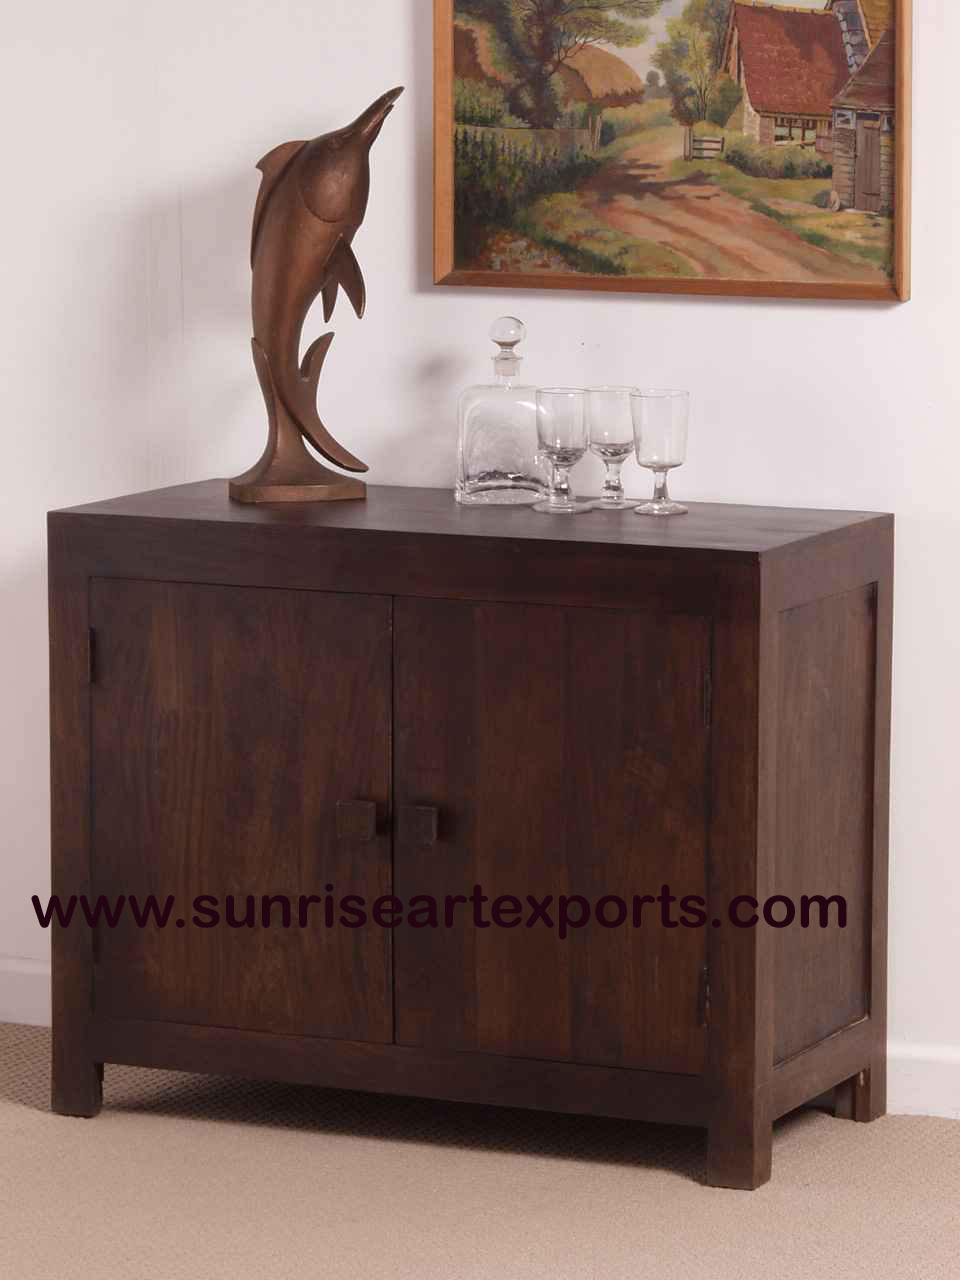 Furniture Manufacturer Mango Wood Furniture Exporters In